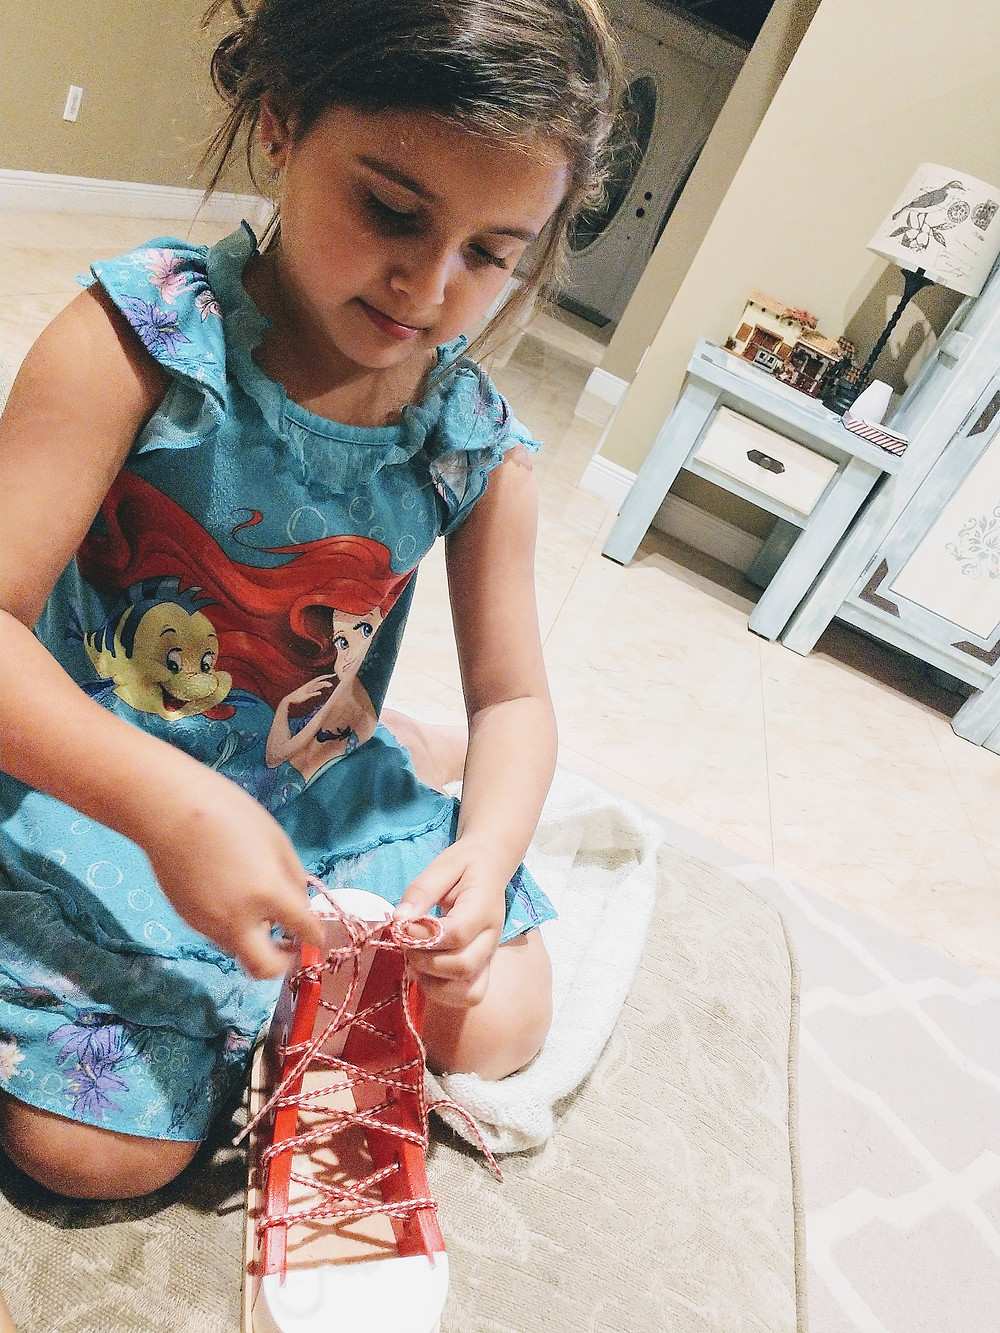 Jenn's-daughter-learning-to-tie-shoes